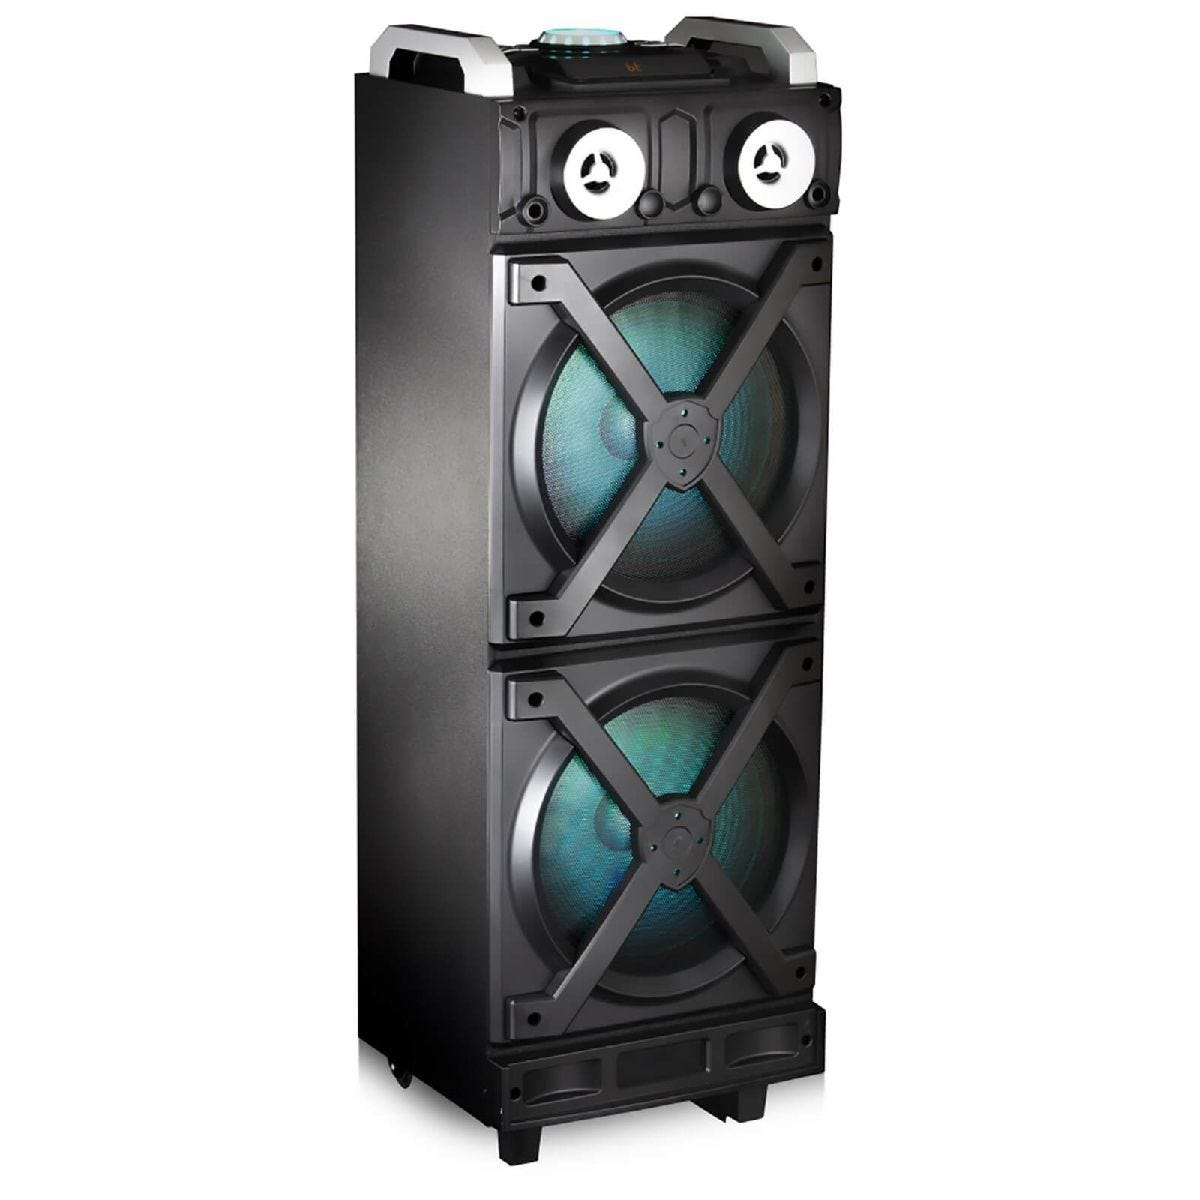 AKAI 100W RMS Party Speaker - Black